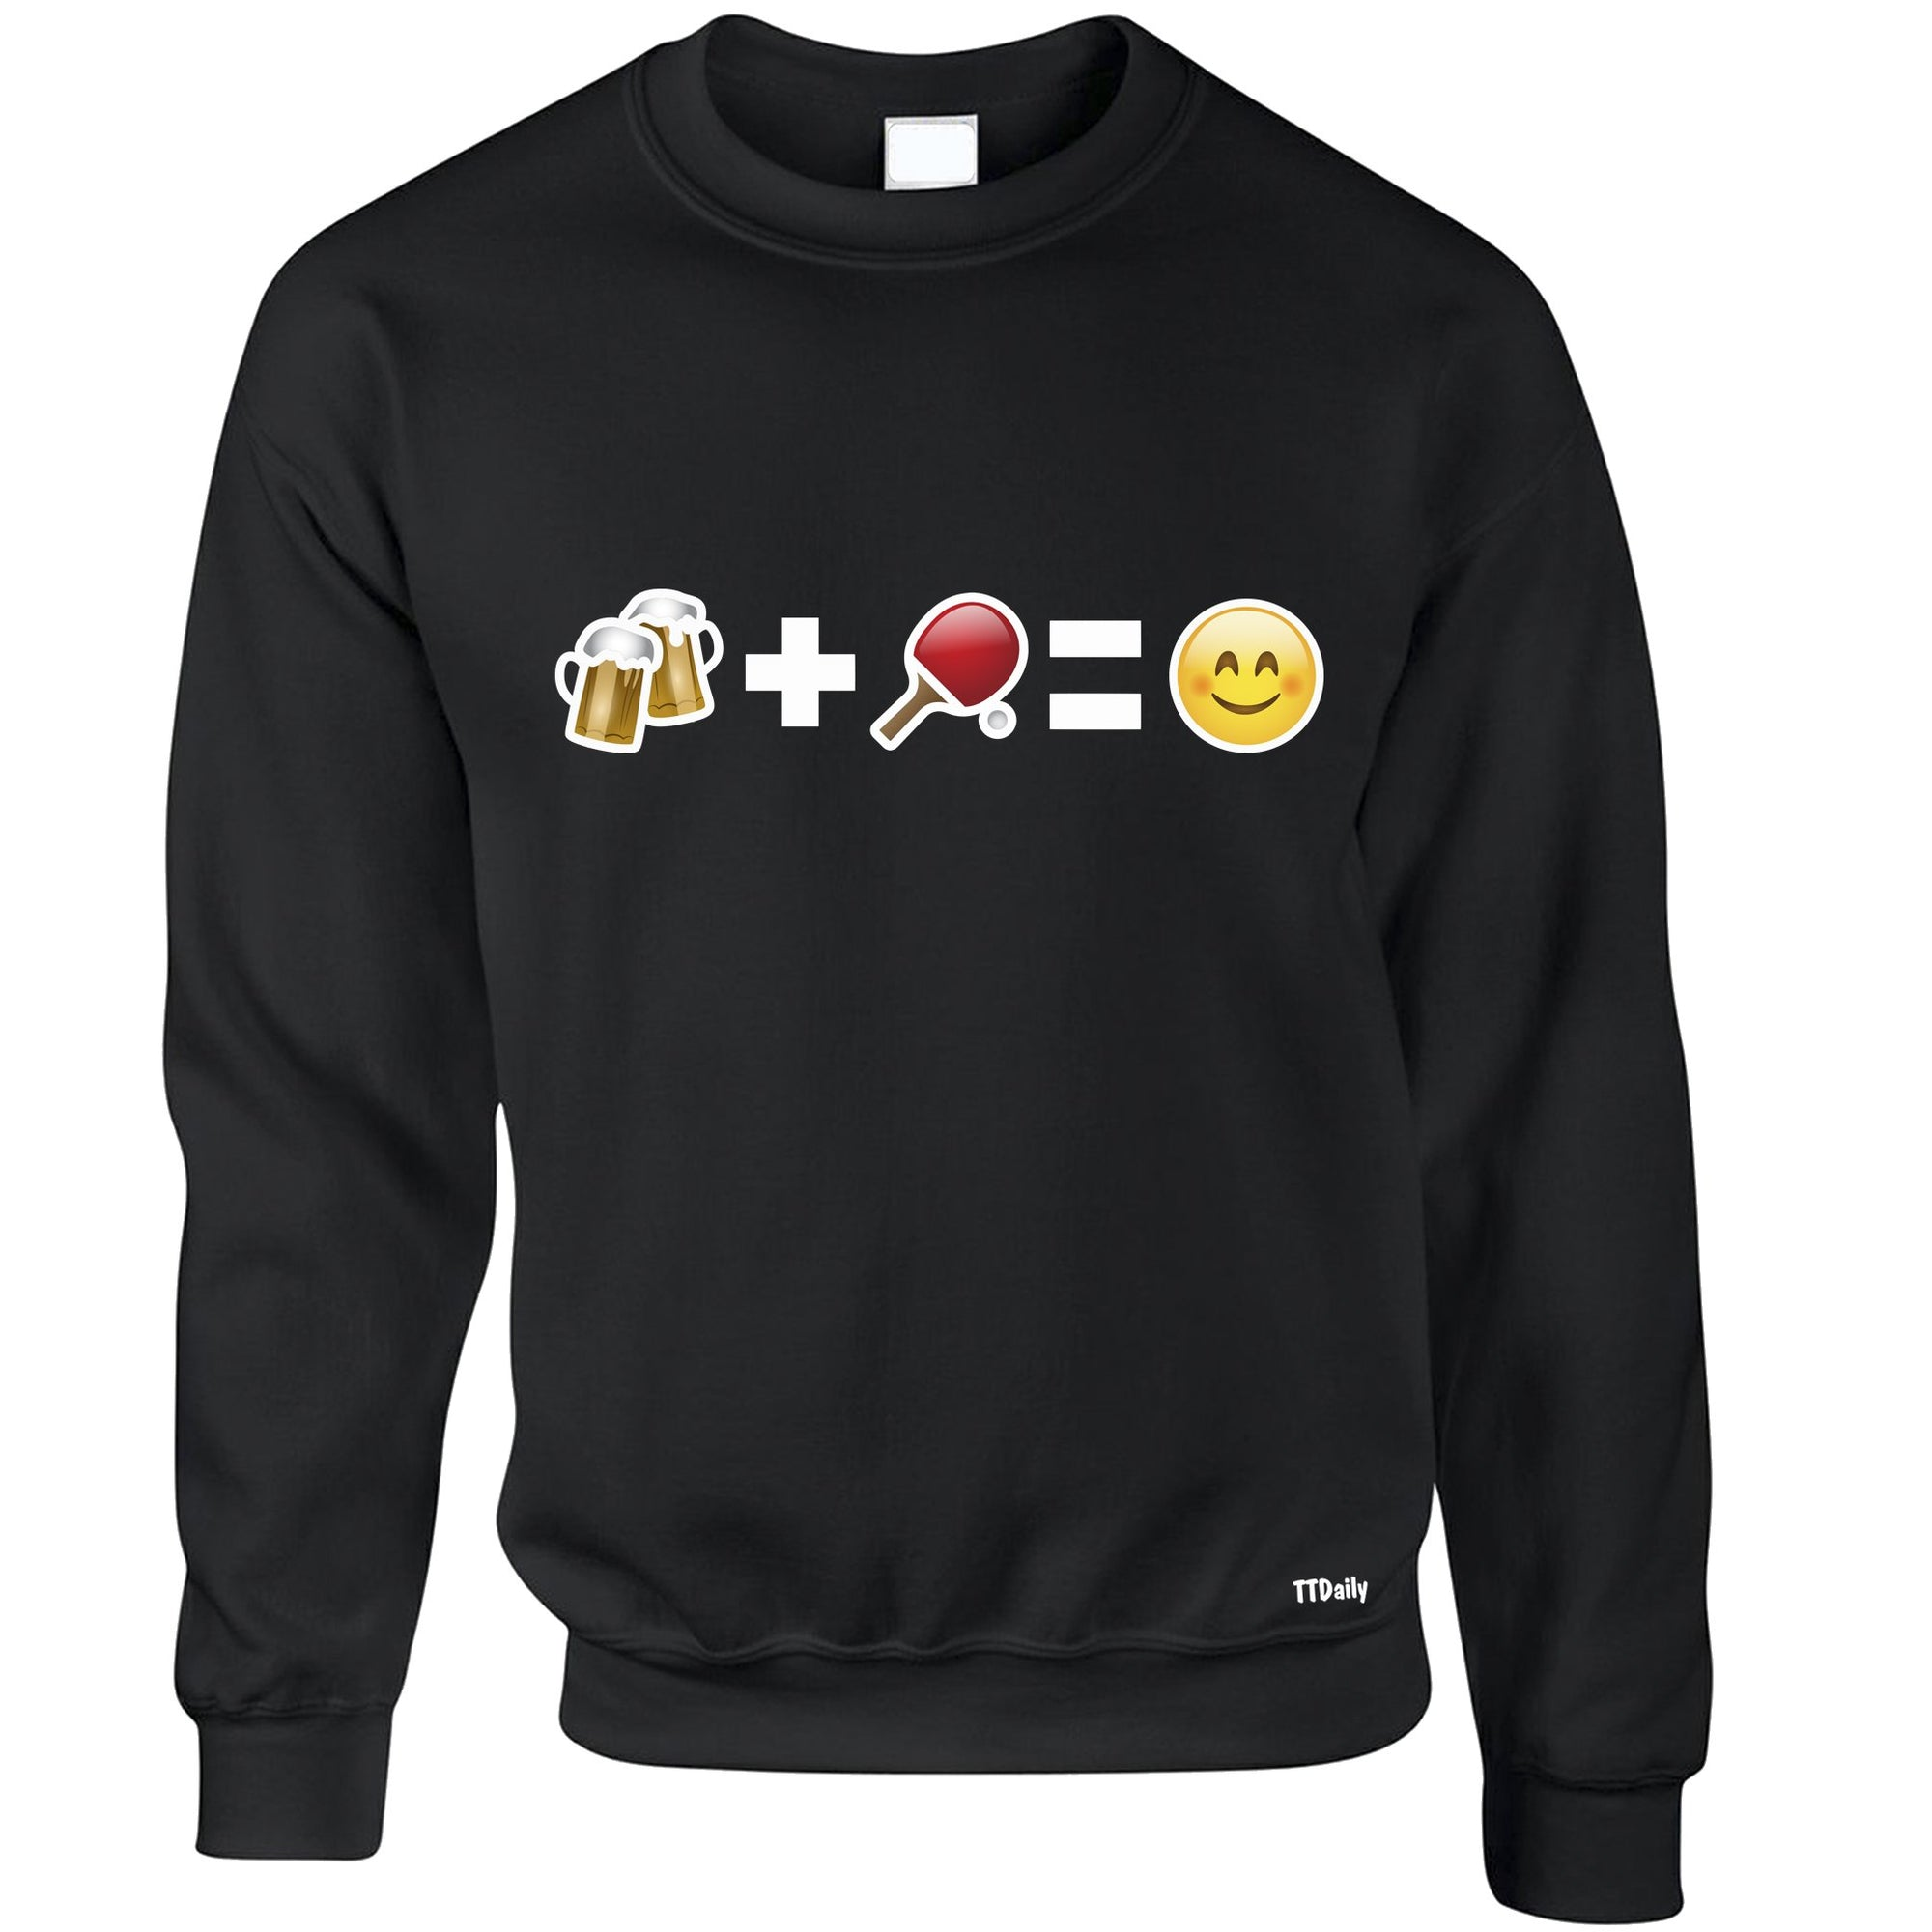 Table Tennis Jumper Beer and Pong Make Me Happy Sweatshirt Sweater